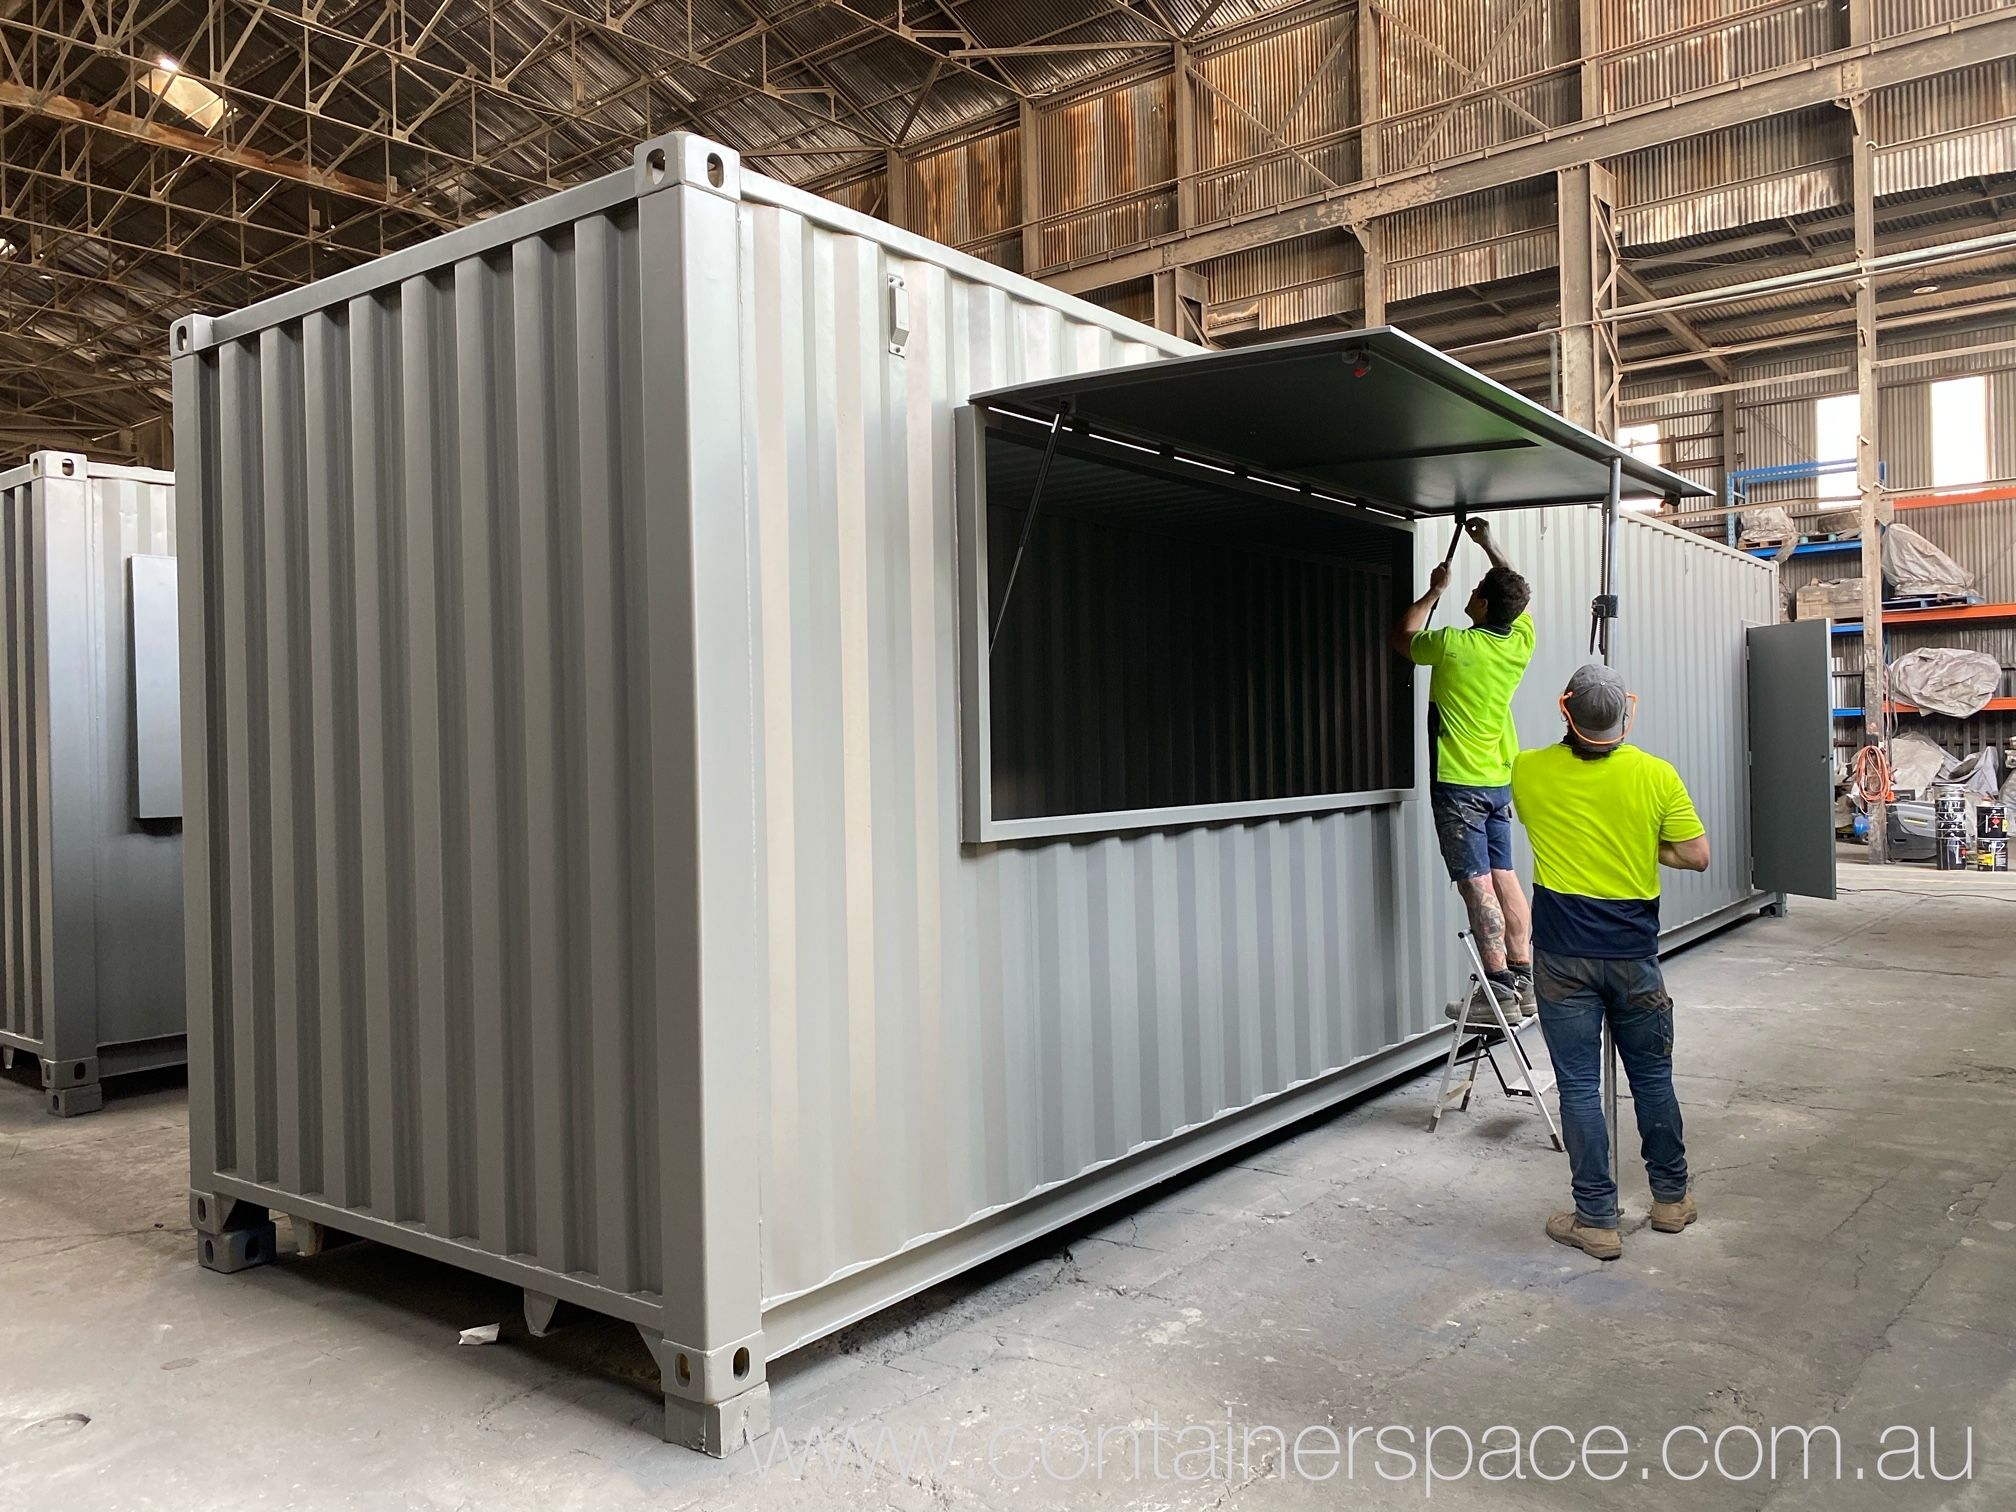 Shipping Containers For Sale In Melbourne Containerspace In 2020 Shipping Containers For Sale Containers For Sale Shipping Container